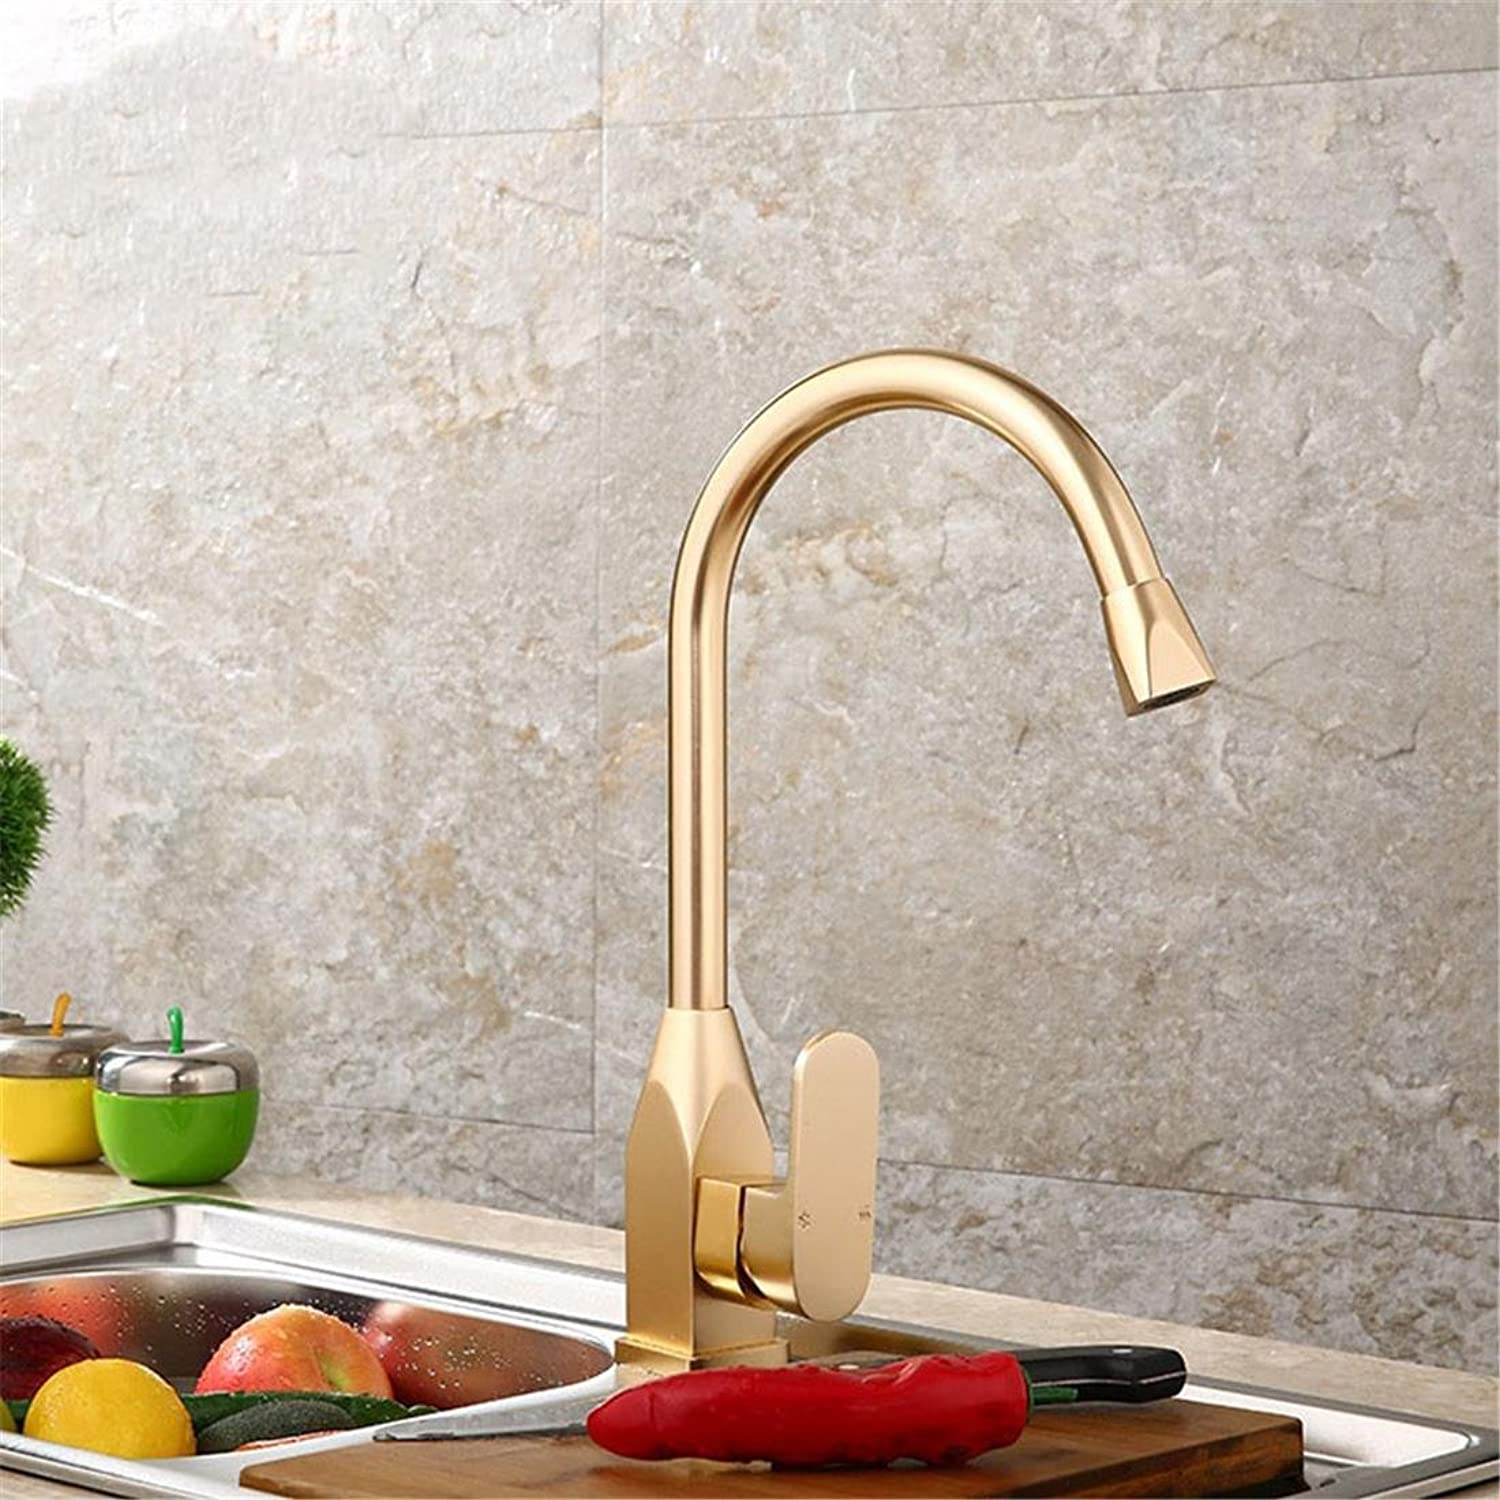 gold Bath Basin Sink Taps Standard Square Cutting Spout Single Lever , Bathroom Kitchen Hot And Cold Mixer , Modern Chrome Lavatory Faucet